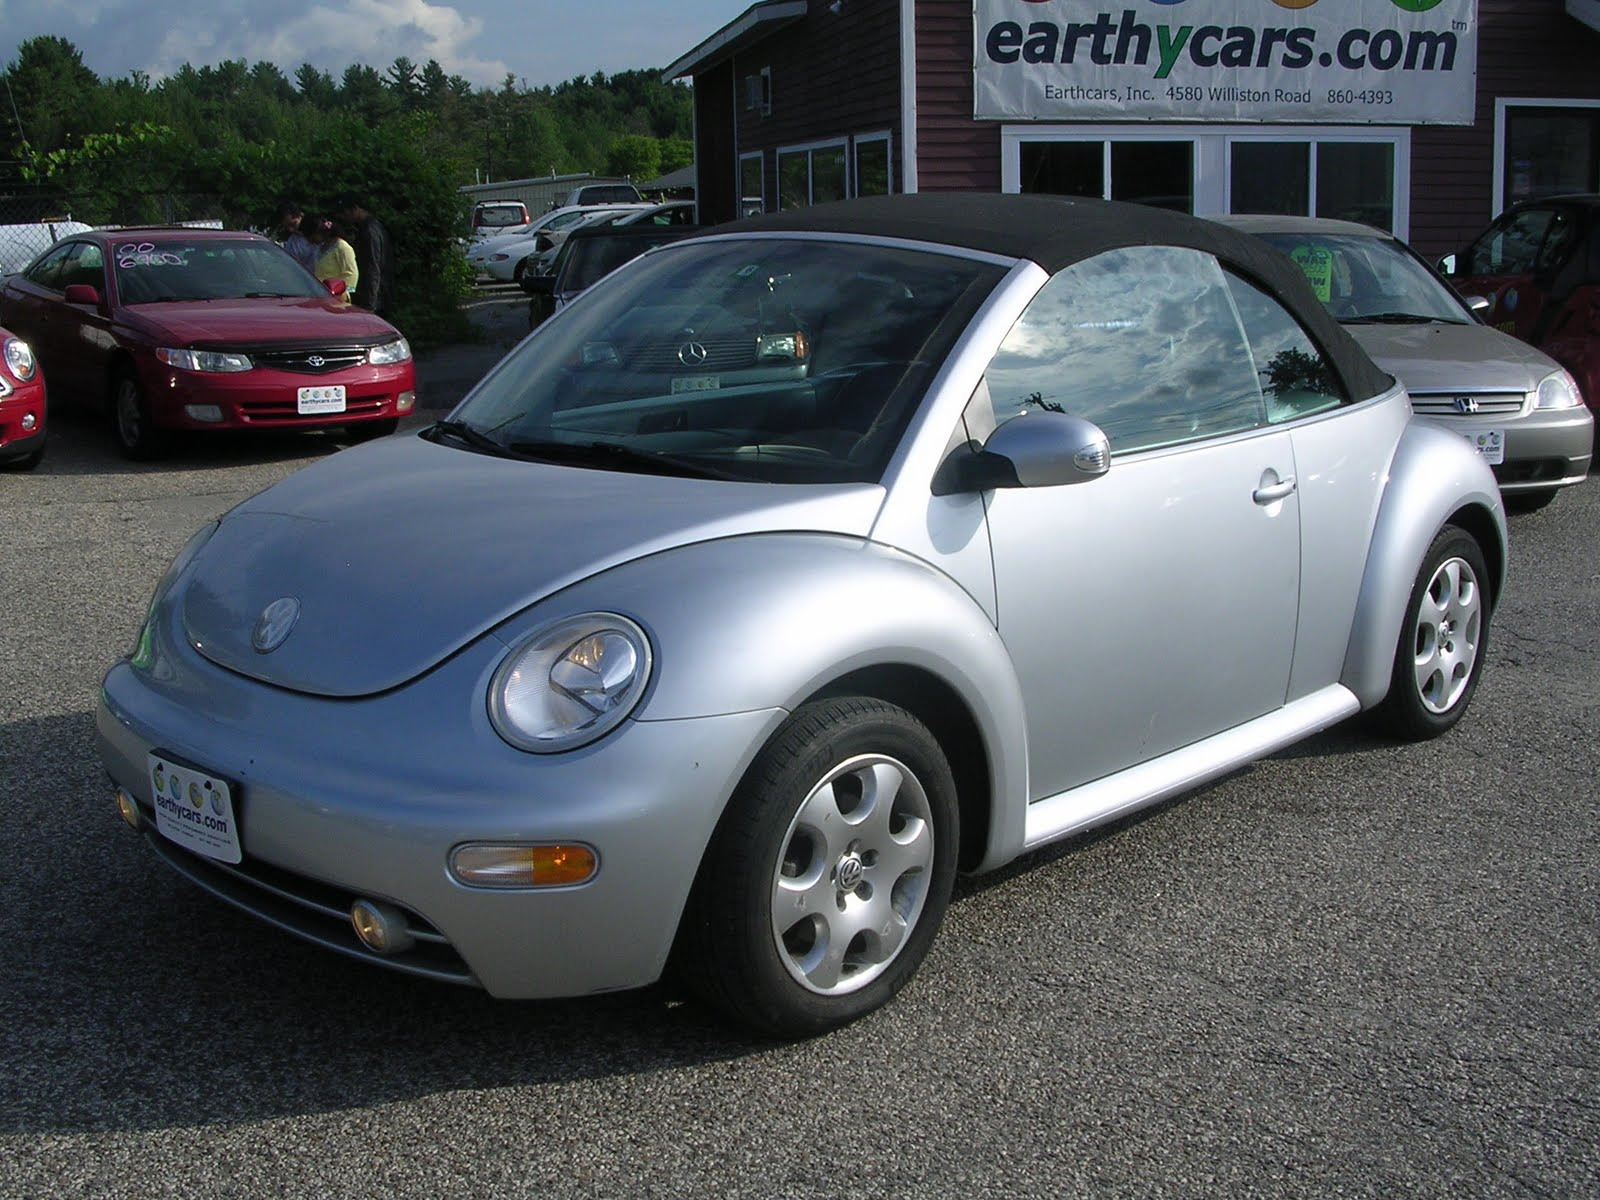 Earthy Cars Blog  Earthy Car Of The Week  2003 Vw New Beetle Convertible